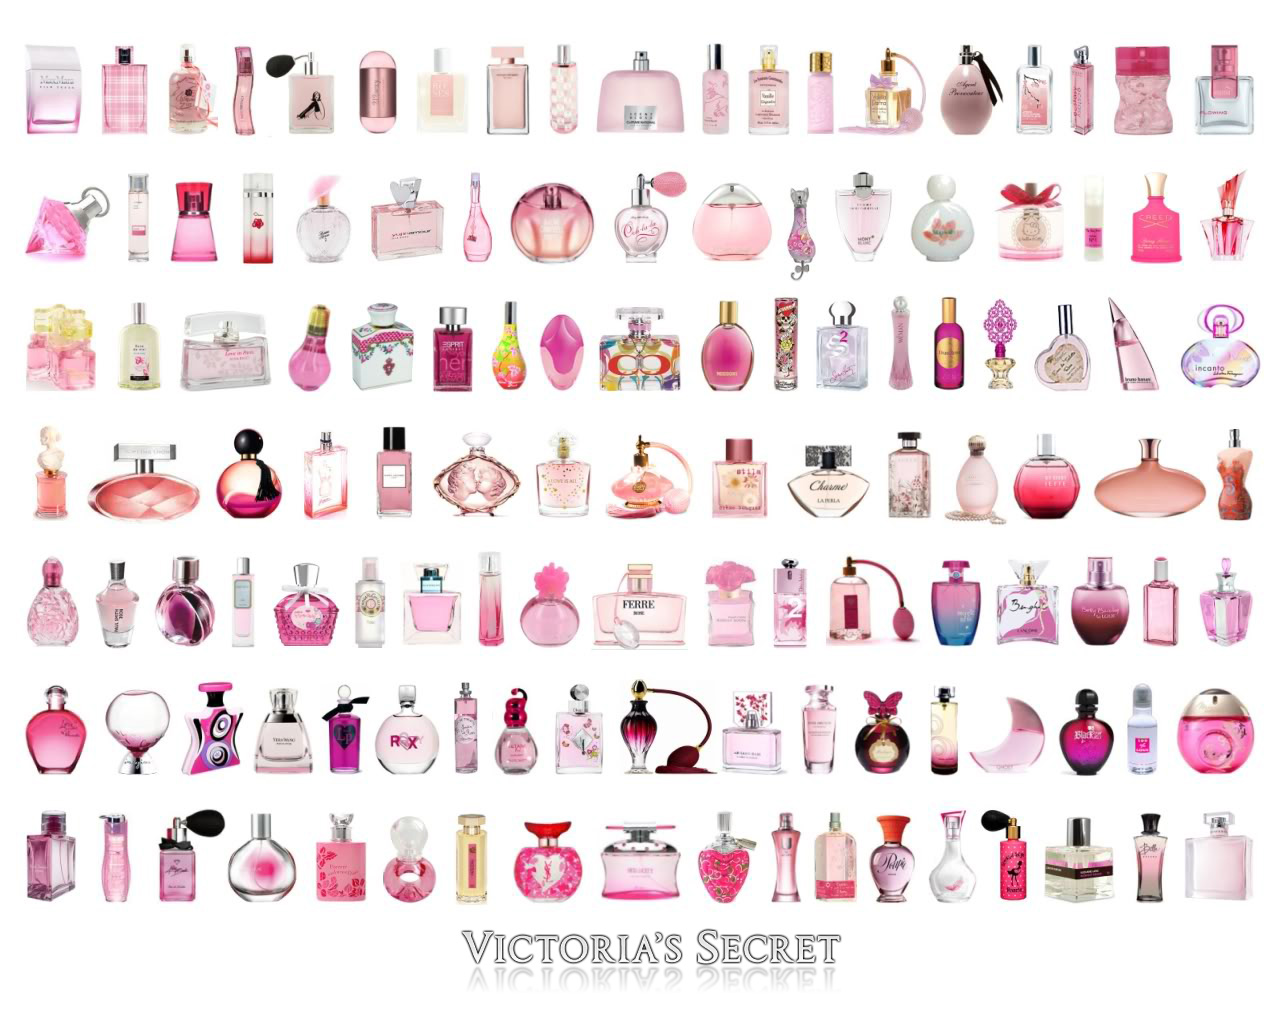 Victorias Secret Images VS Rosa HD Wallpaper And Background Photos